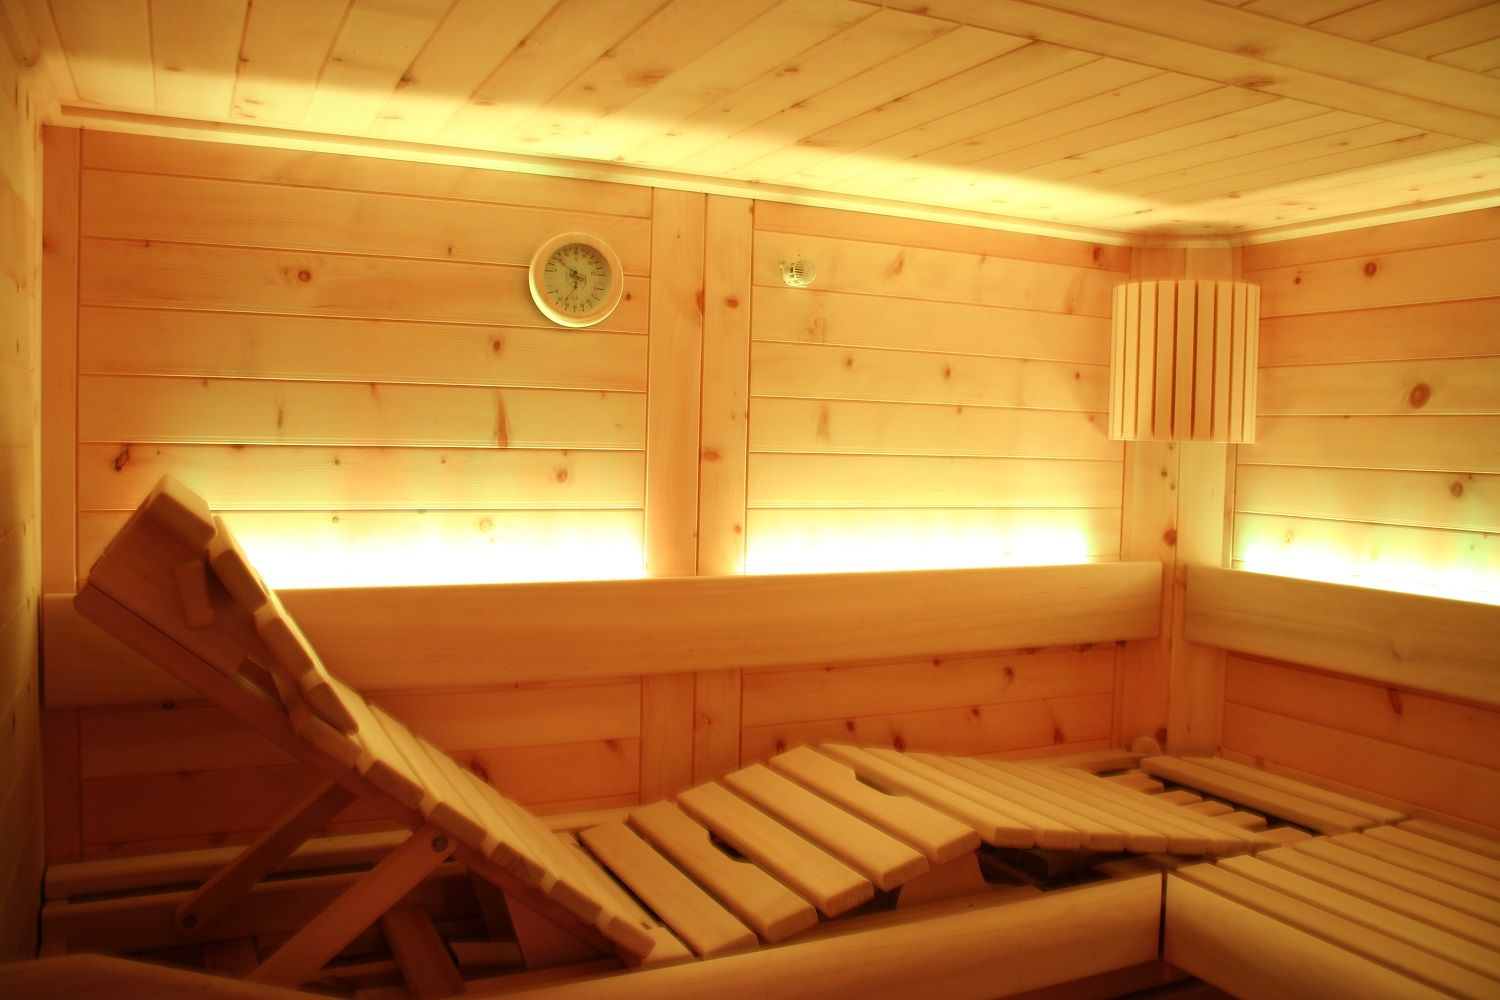 holz zubeh r f r sauna google pinterest saunas and indoor sauna. Black Bedroom Furniture Sets. Home Design Ideas